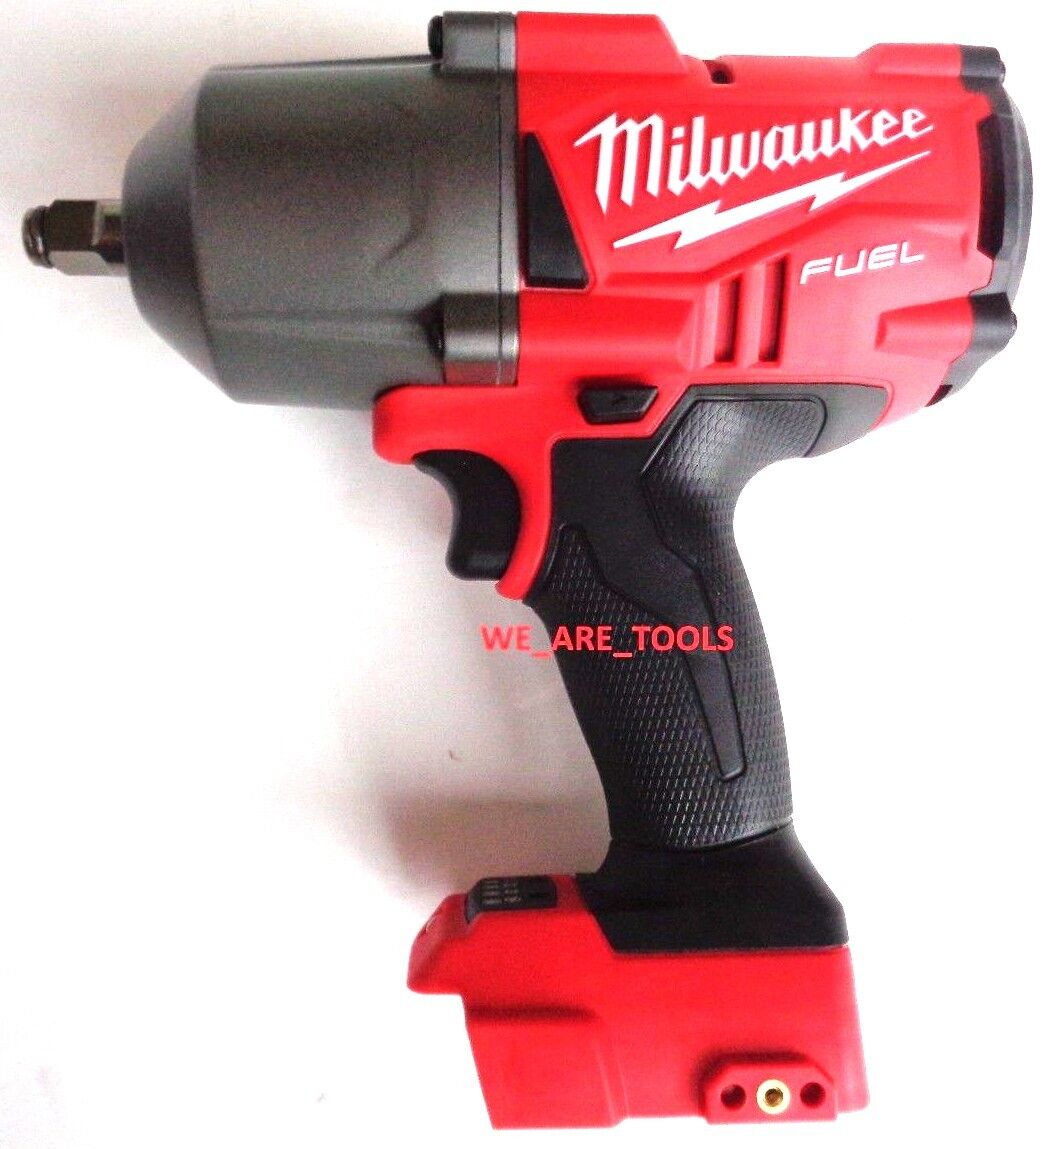 Milwaukee FUEL 2767-20 18V 1/2 Impact Wrench,(1) 48-11-1850 Battery, Charger M18 10